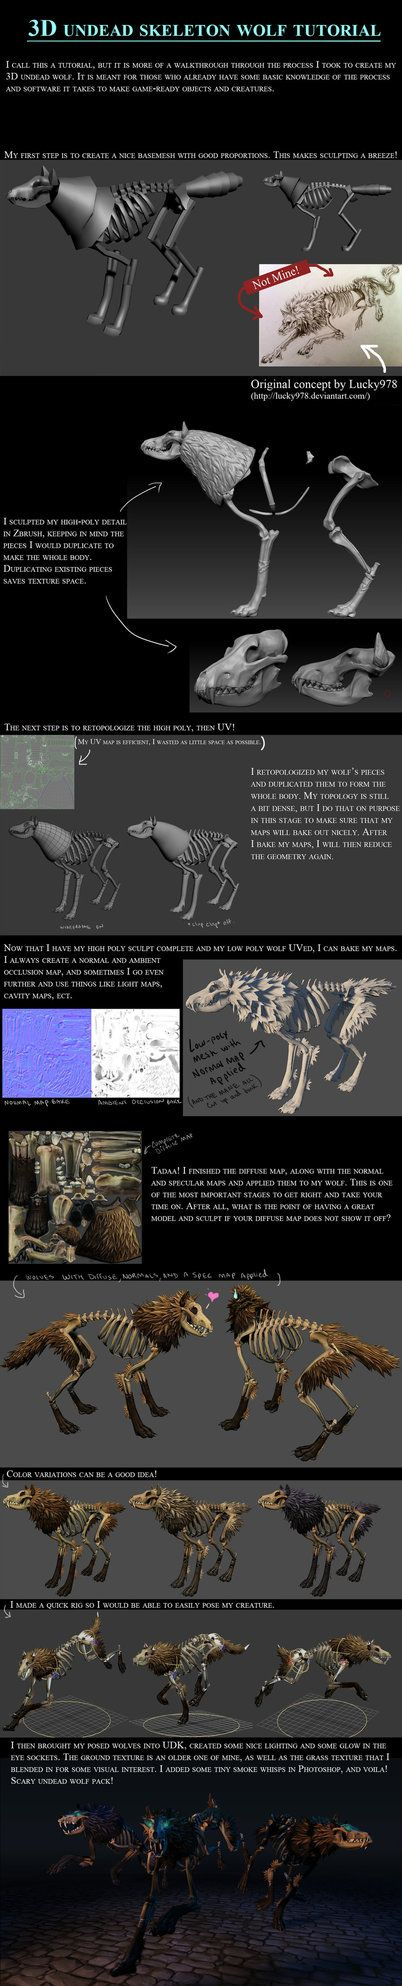 3D Skeleton Wolf Tutorial by *100chihuahuas on deviantART